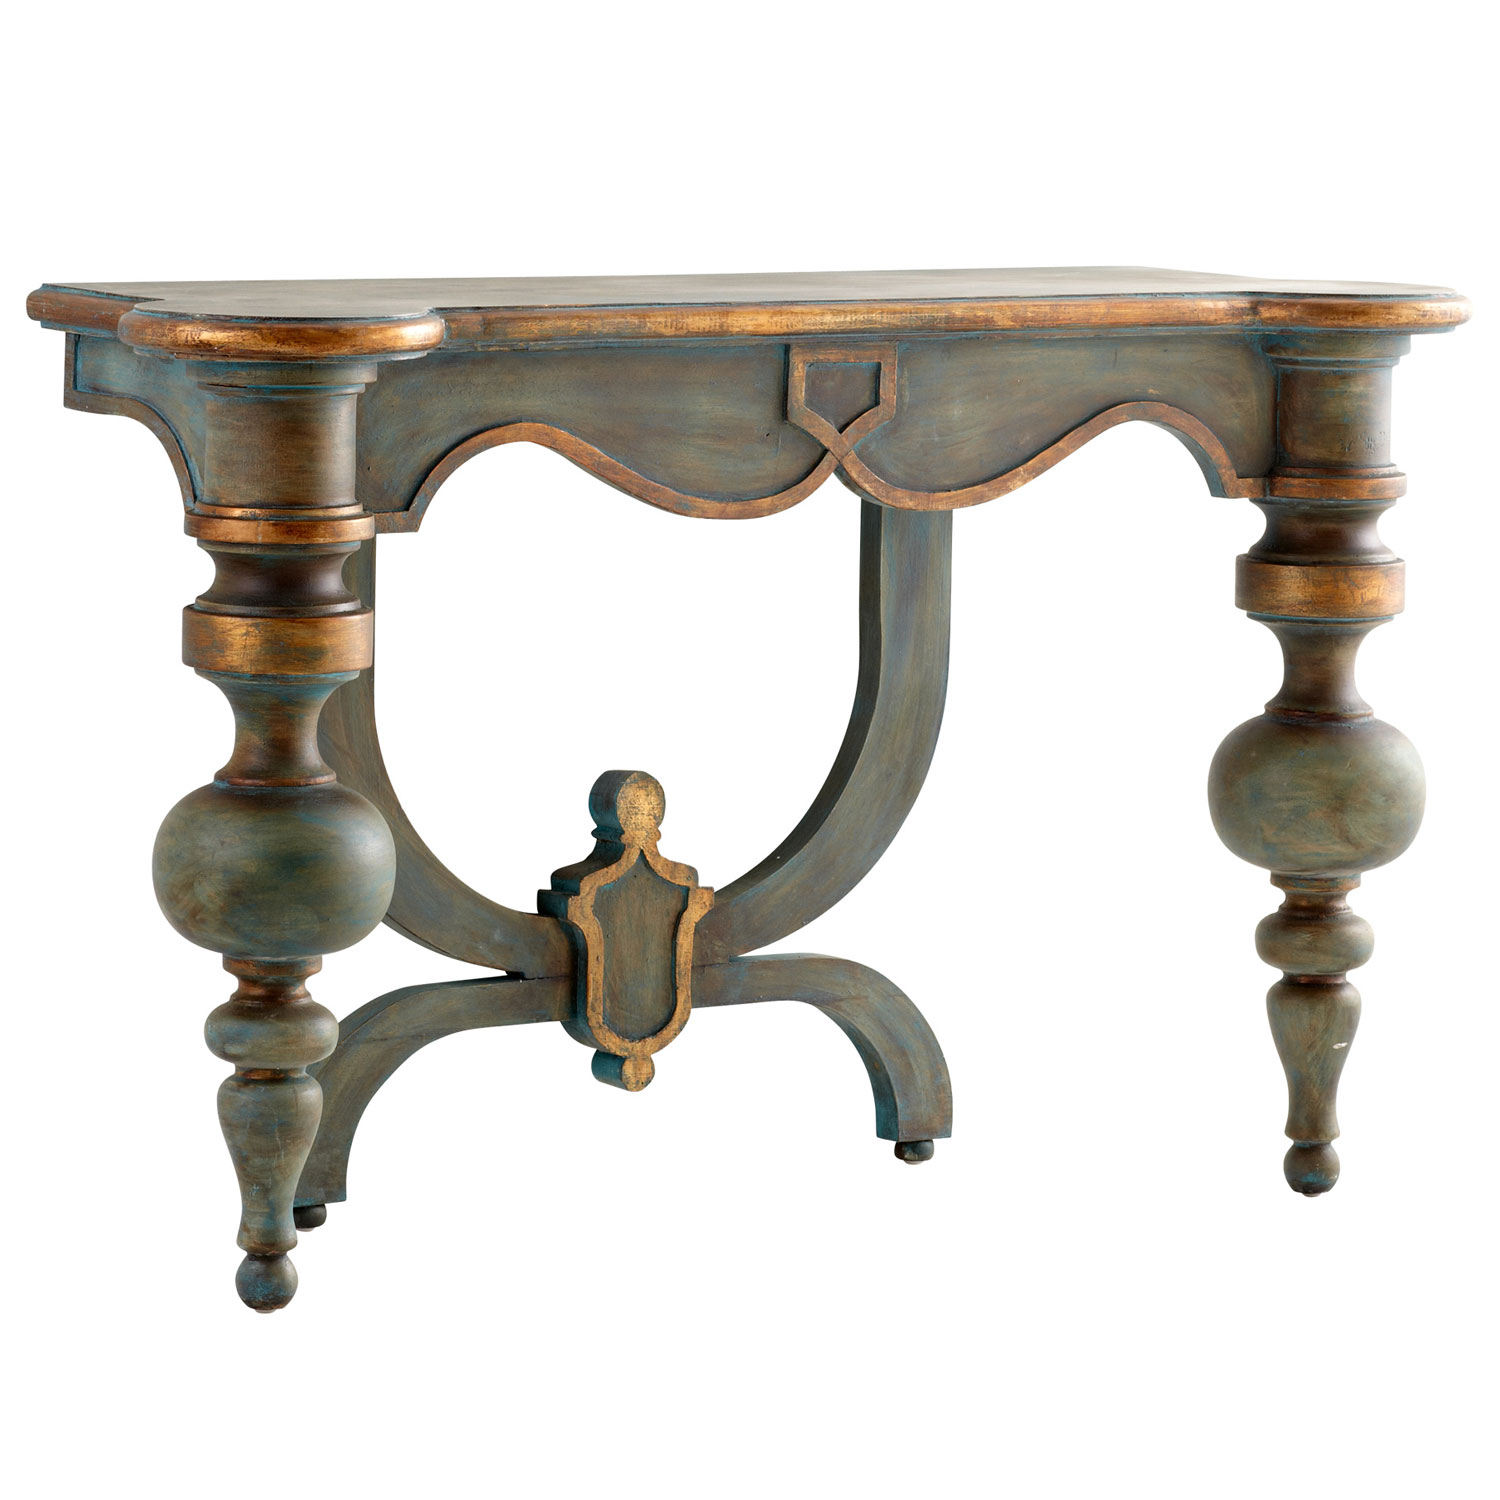 exquisitely designed the lacroix console table creates unexpected baroque accent spirit with inspired style small round antique drawer simple lamp grey metal side iron coffee